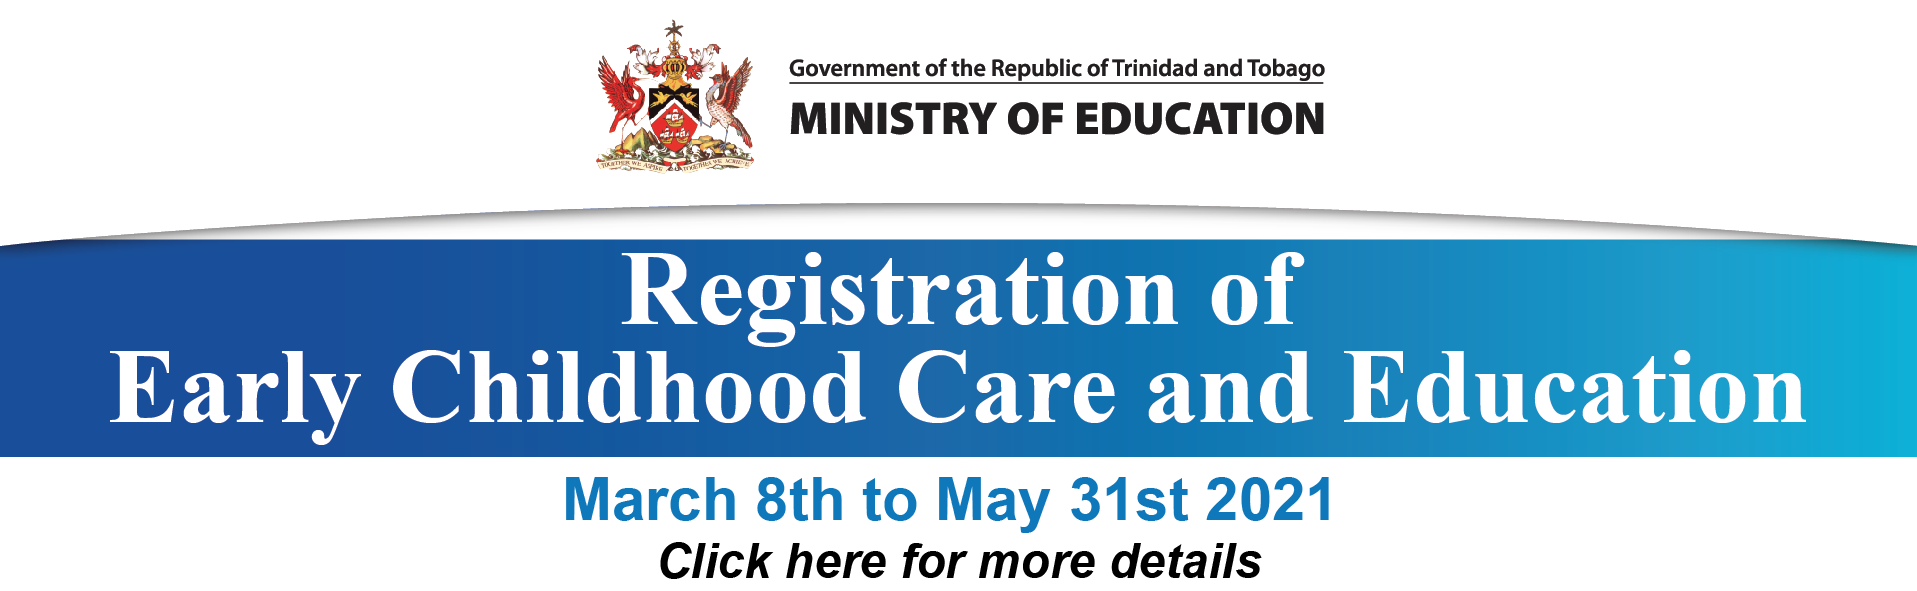 Early Childhood Care and Education Registration 2021